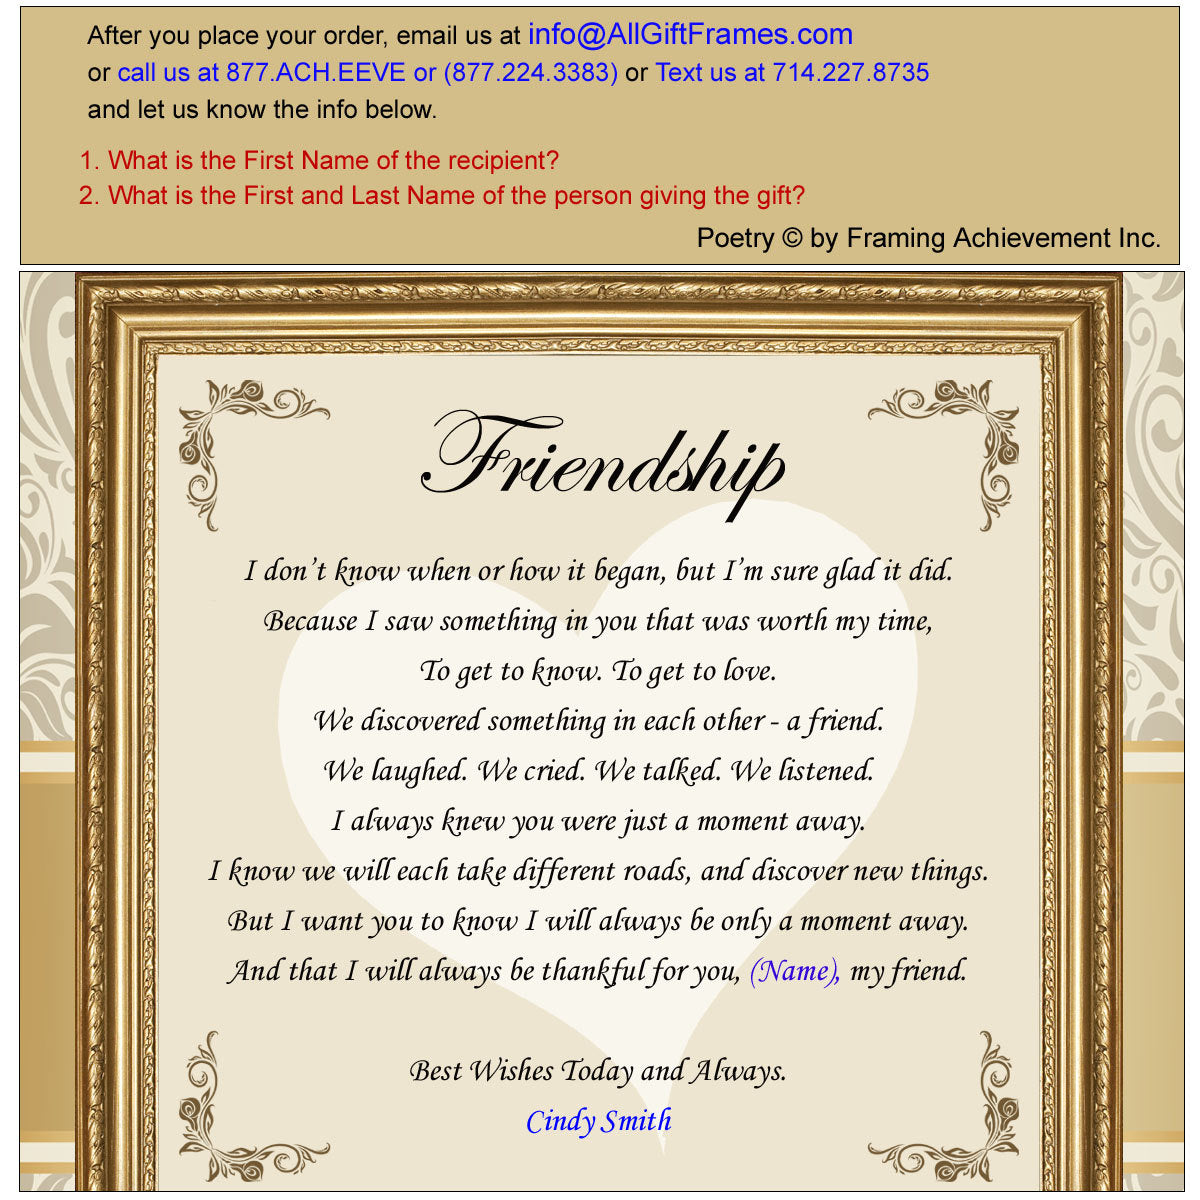 Personalized Poetry Friendship Poem Unframed 11x14 Matted Best Friends Birthday Present